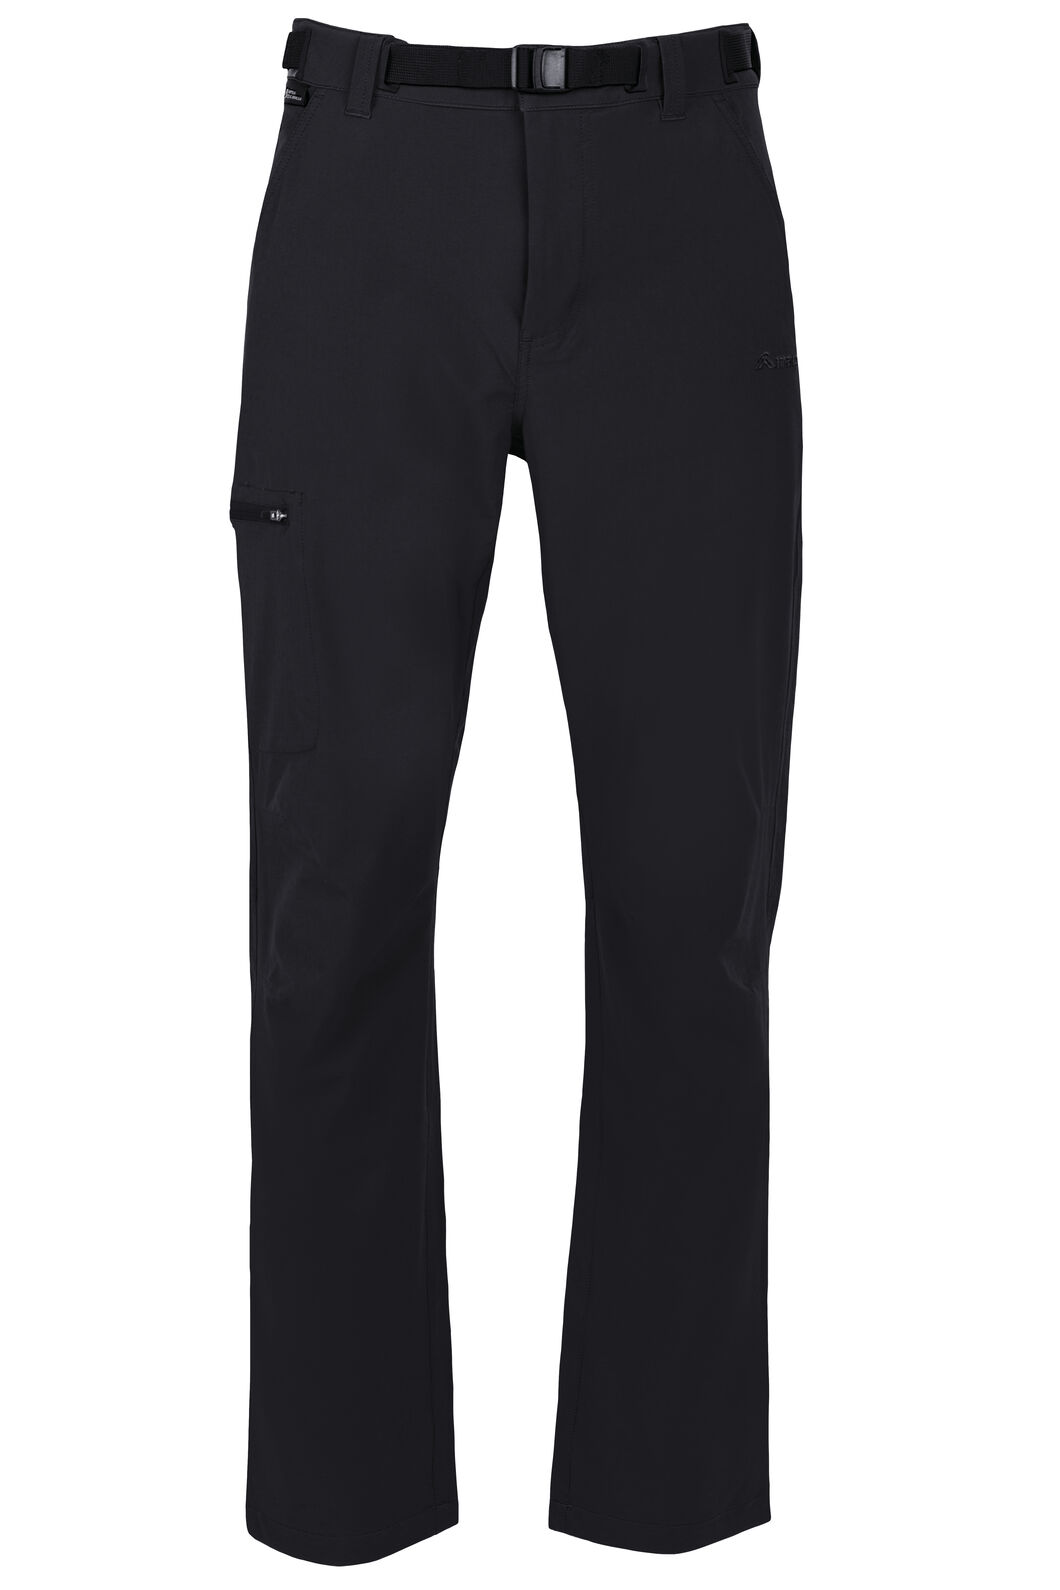 Macpac Trekker Pertex Equilibrium® Softshell Pants - Men's, Black, hi-res